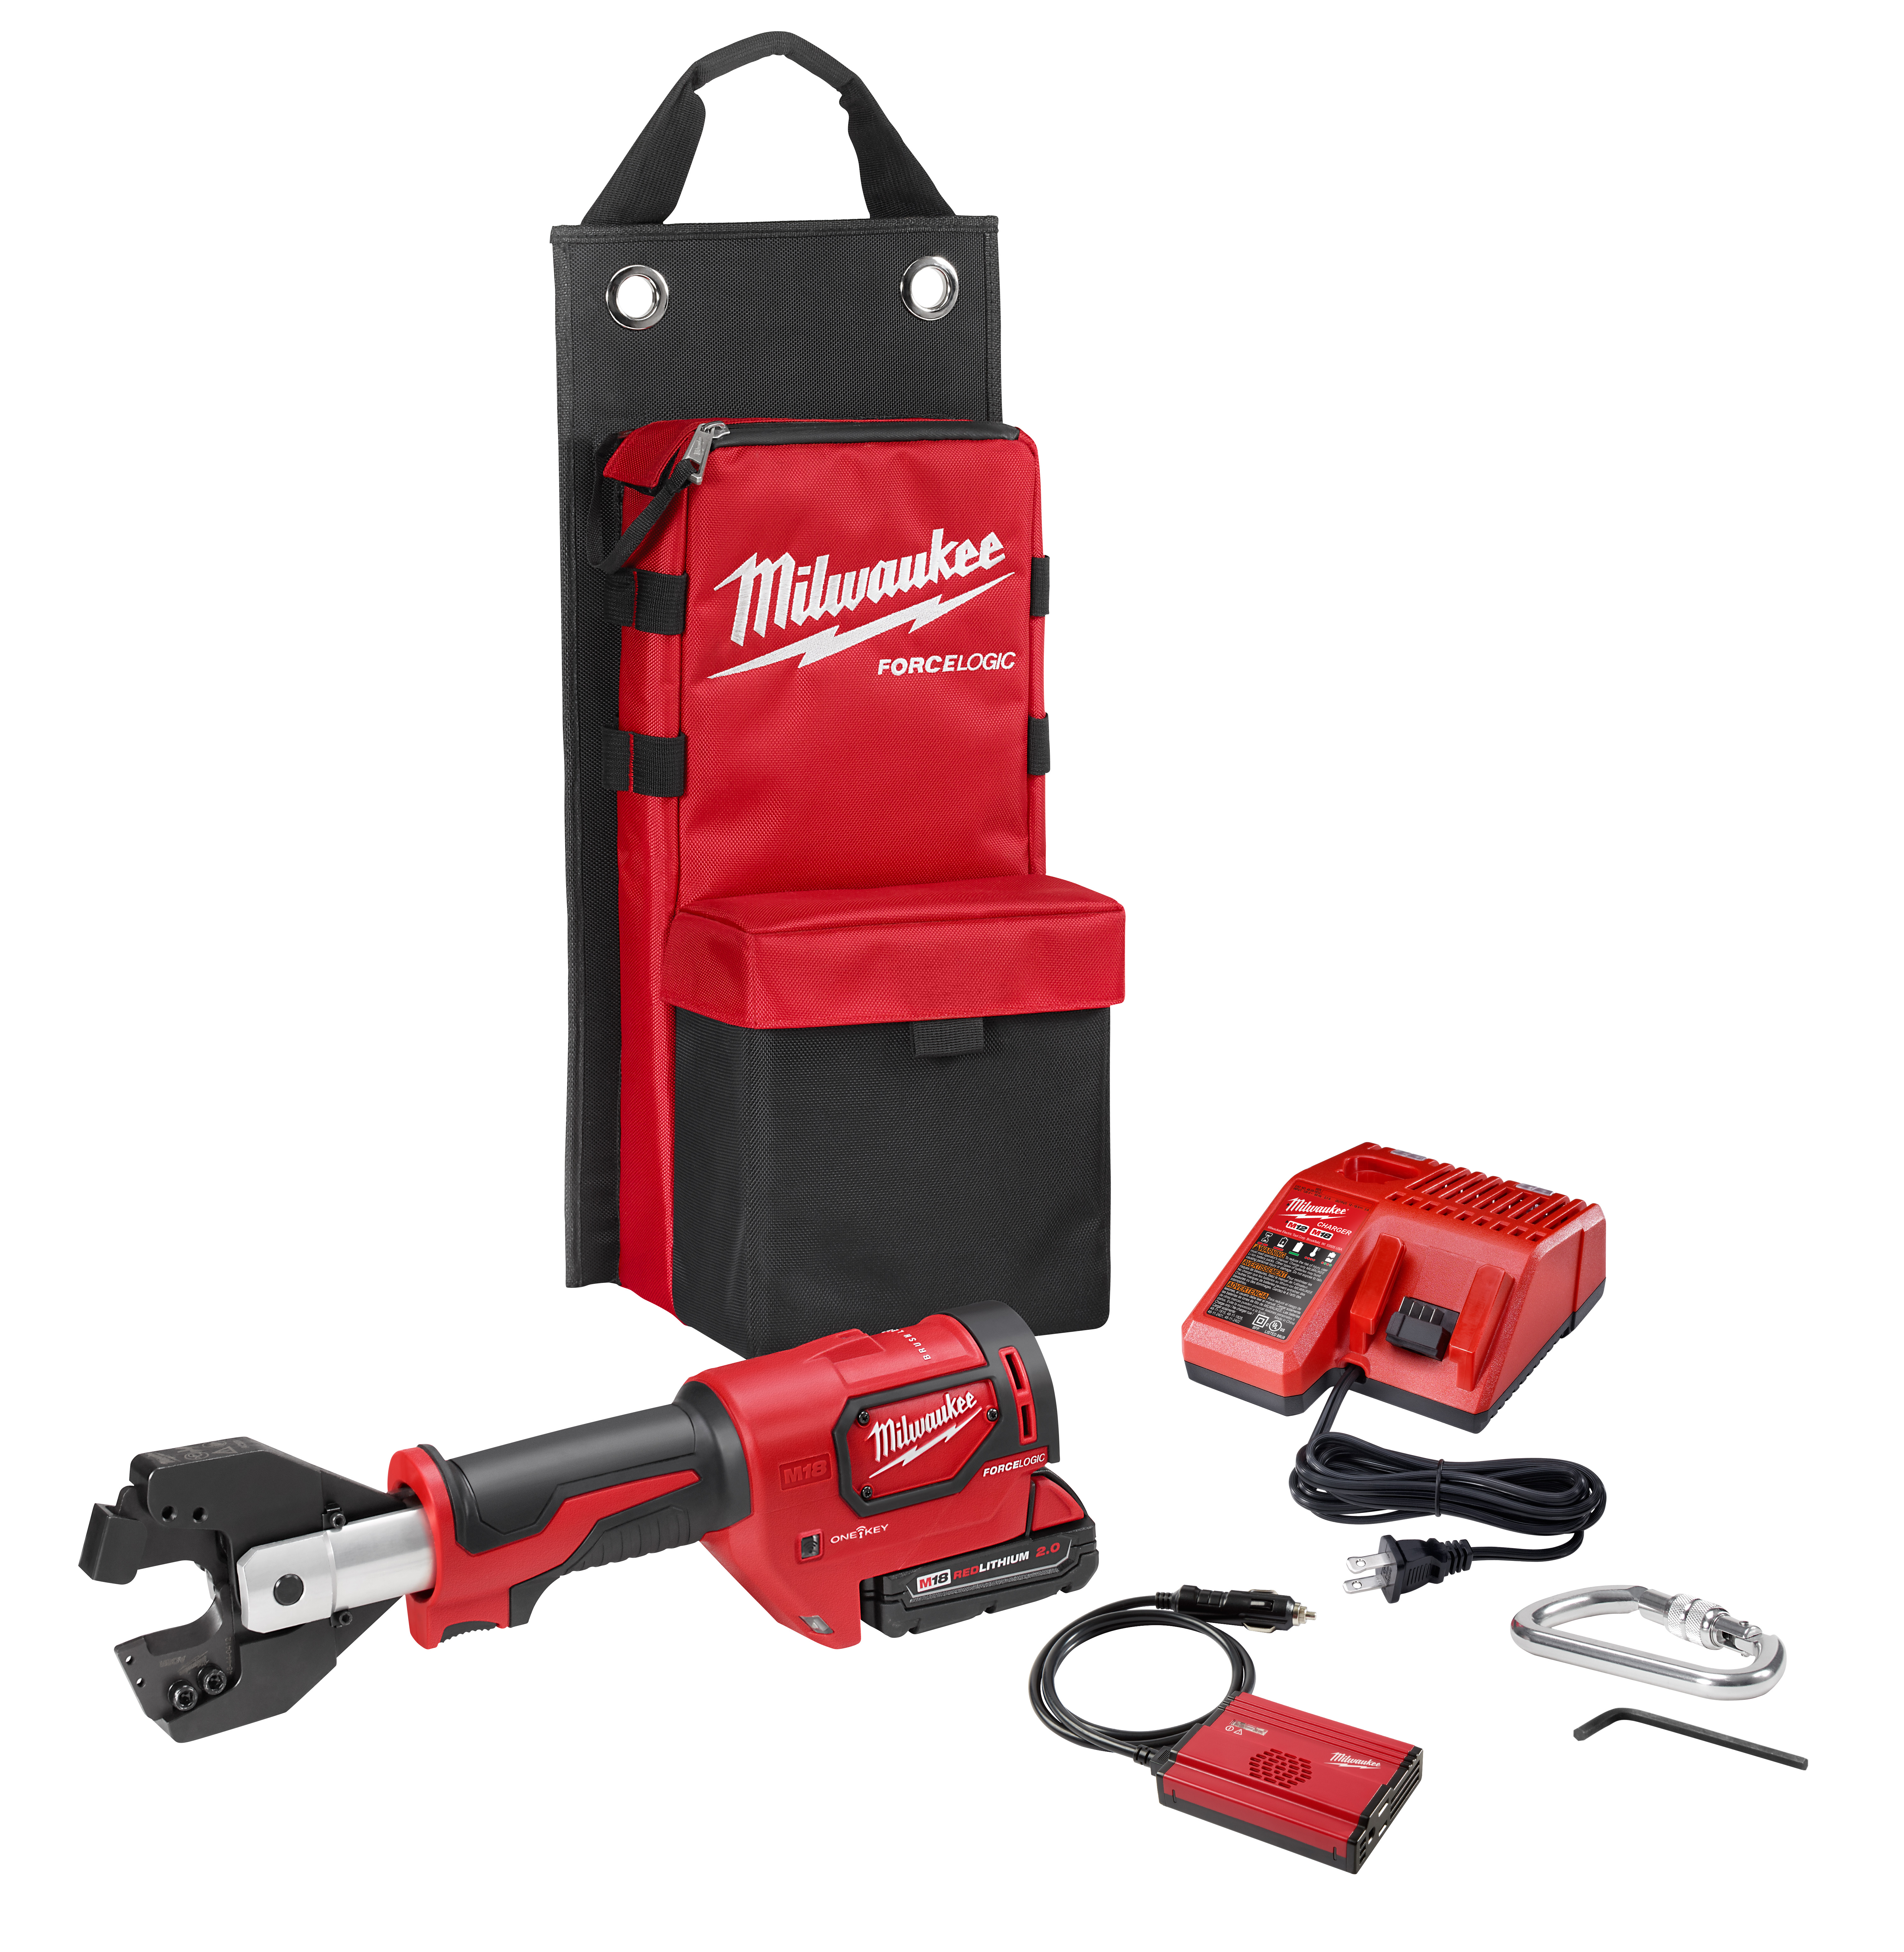 Milwaukee® M18™ FORCELOGIC® 2672-21SKIT Auto Reset Cordless Cable Cutter Kit, 750 to 1000 kcmil Cu/Al Cutting, 18 VDC, Lithium-Ion Battery